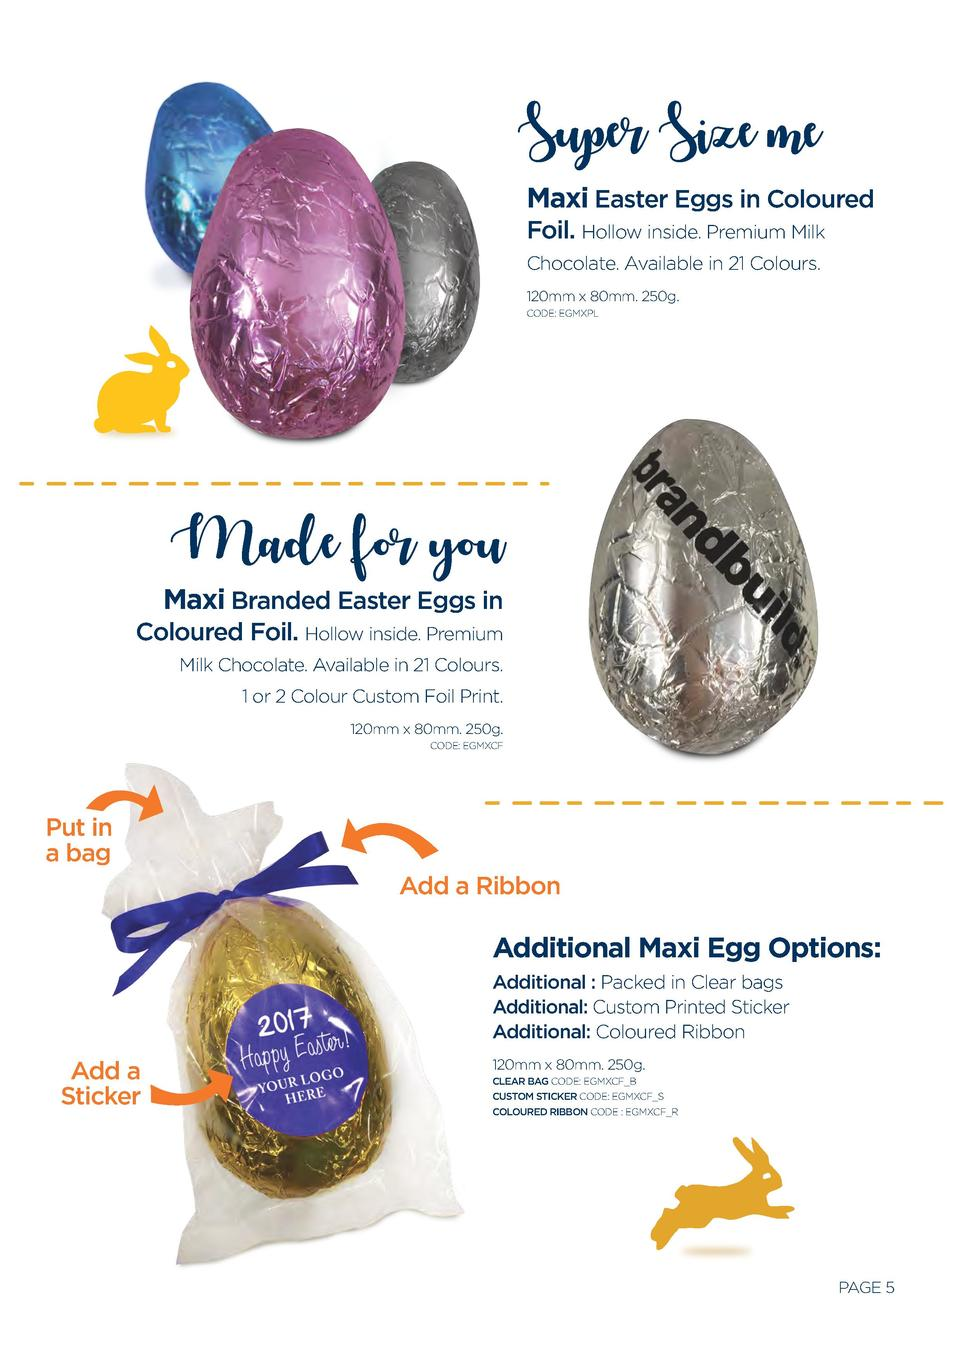 Super Size me Maxi Easter Eggs in Coloured Foil. Hollow inside. Premium Milk Chocolate. Available in 21 Colours. 120mm x 8...